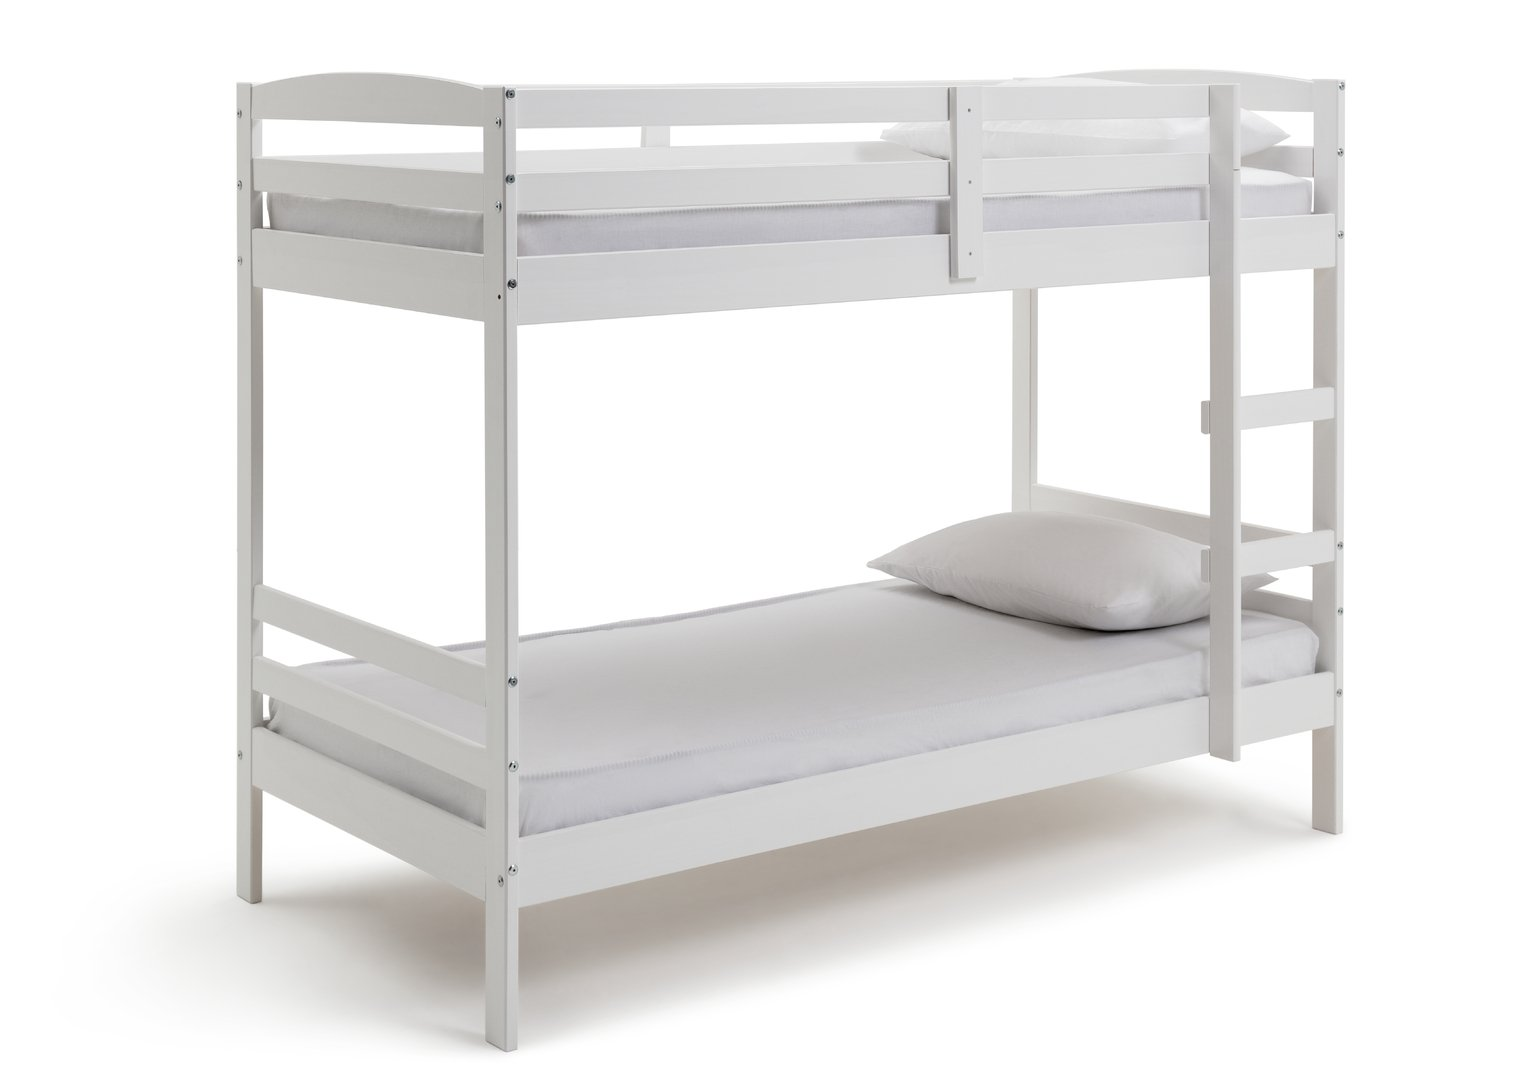 home josie single bunk bed frame   white results for bunk beds in home and garden bedroom furniture      rh   argos co uk